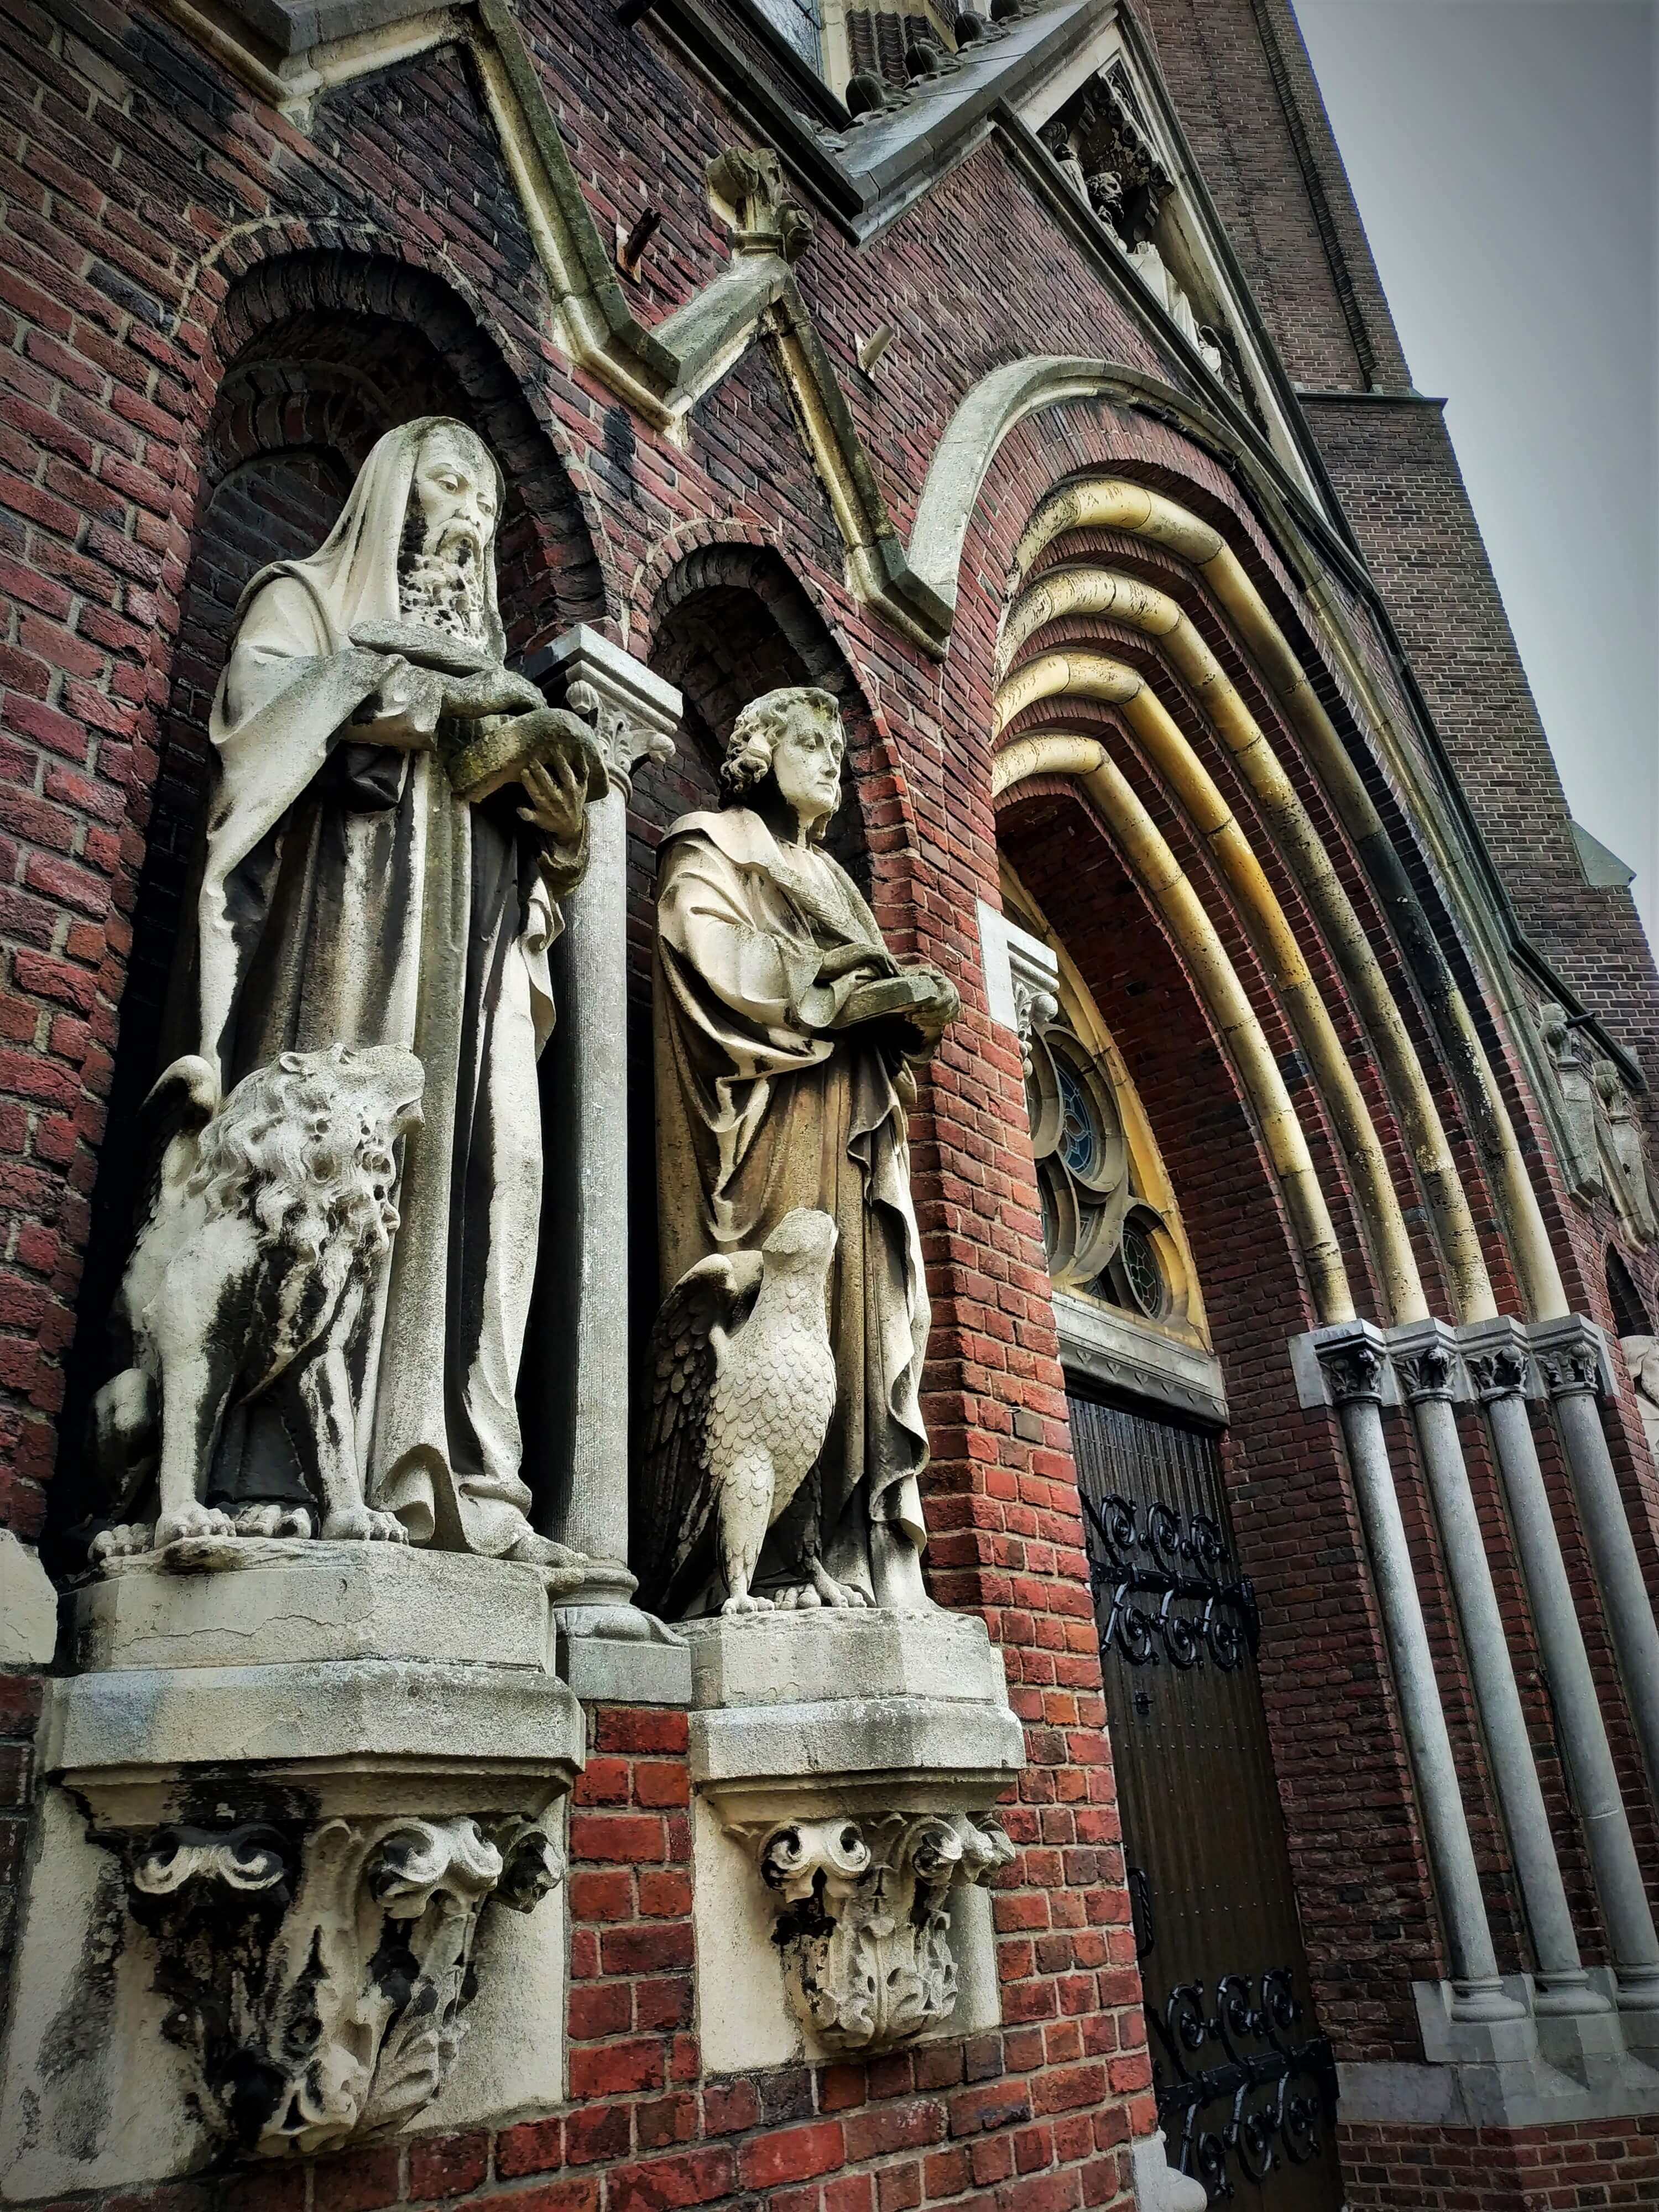 St Catherine church entrance in Eindhoven, holland